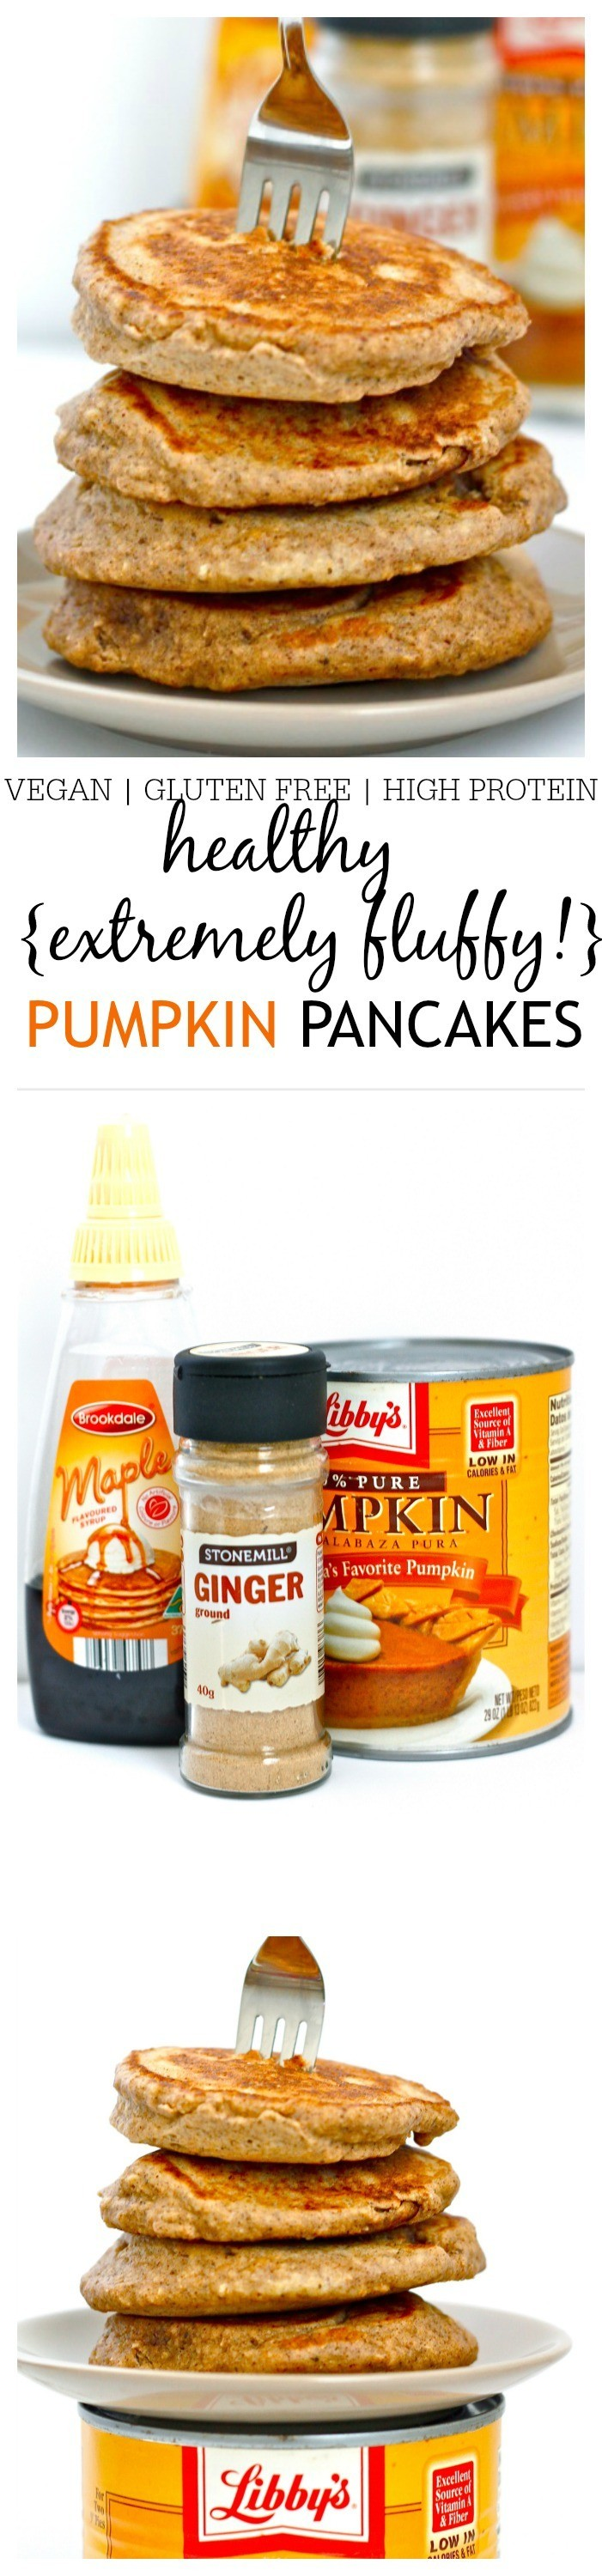 Healthy {and fluffiest!} Protein Packed Pumpkin Pancakes- Hands down, the fluffiest pancakes you'll ever make which are so healthy and filling! High in protein, gluten free, dairy free, sugar free and a vegan option, an easy method provides a perfect stack of pancakes every time with a hidden vegetable too! @thebigmansworld -thebigmansworld.com